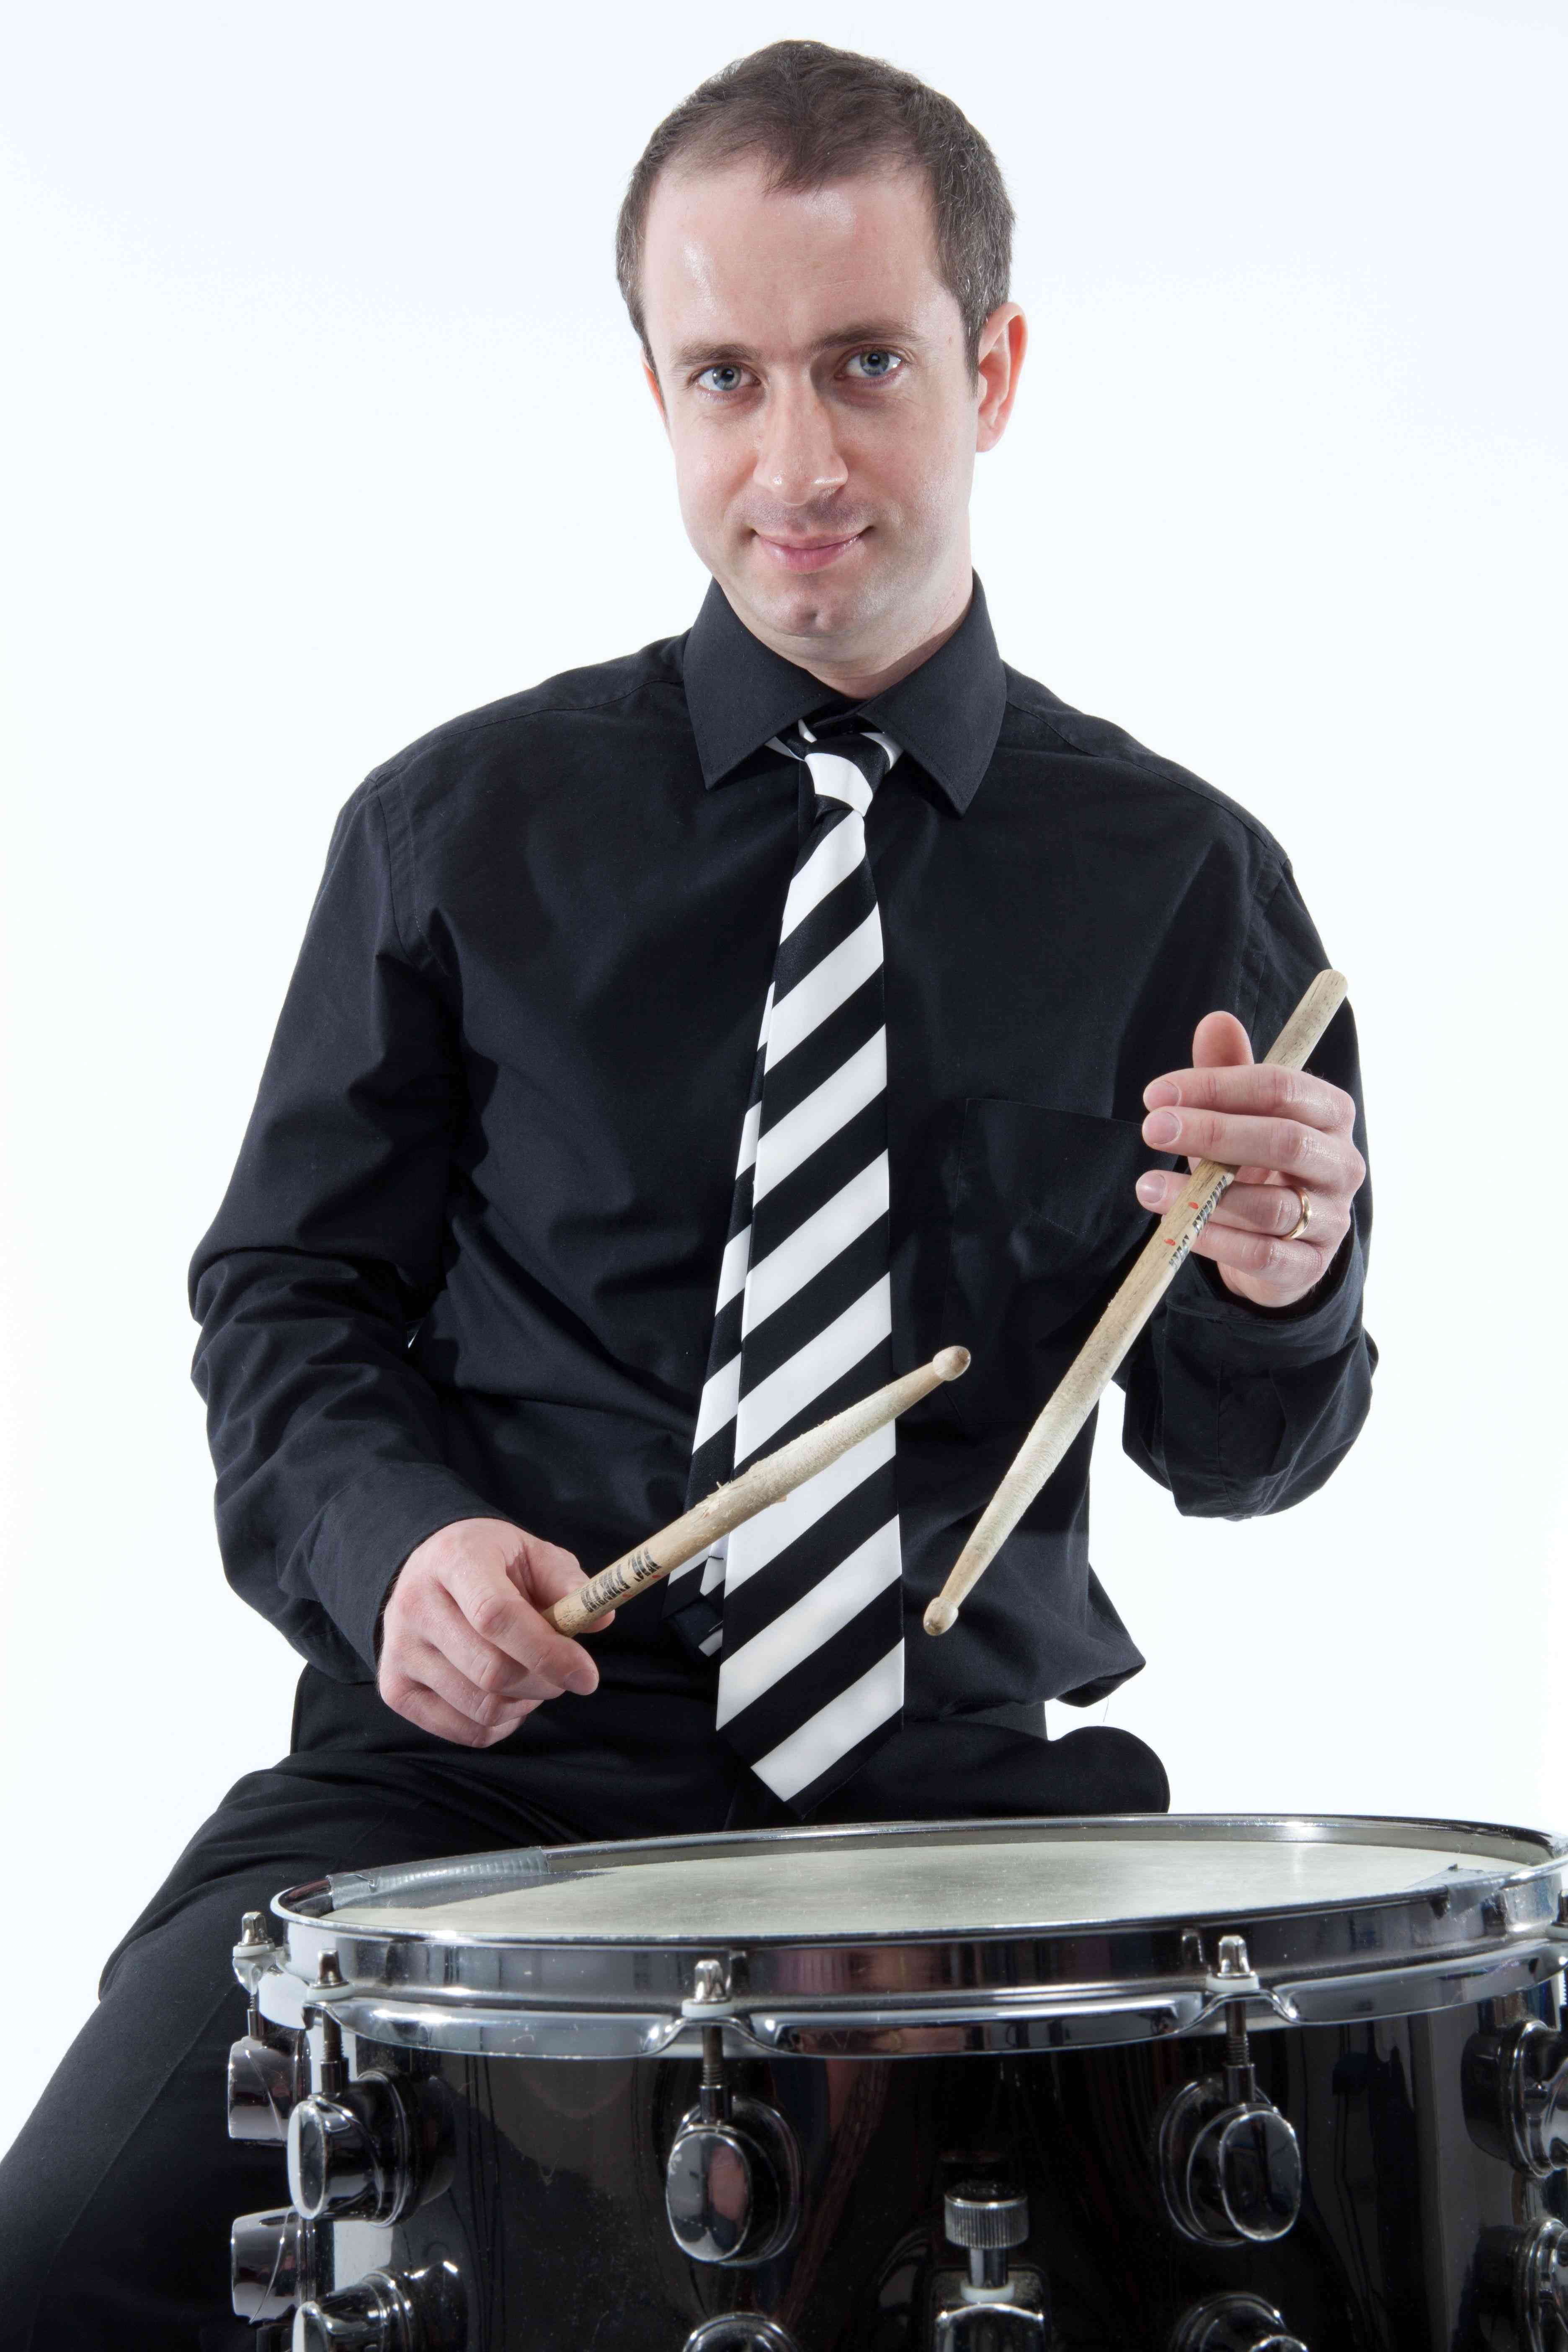 Billy Cunningham Professional Drummer Teacher and Repairs